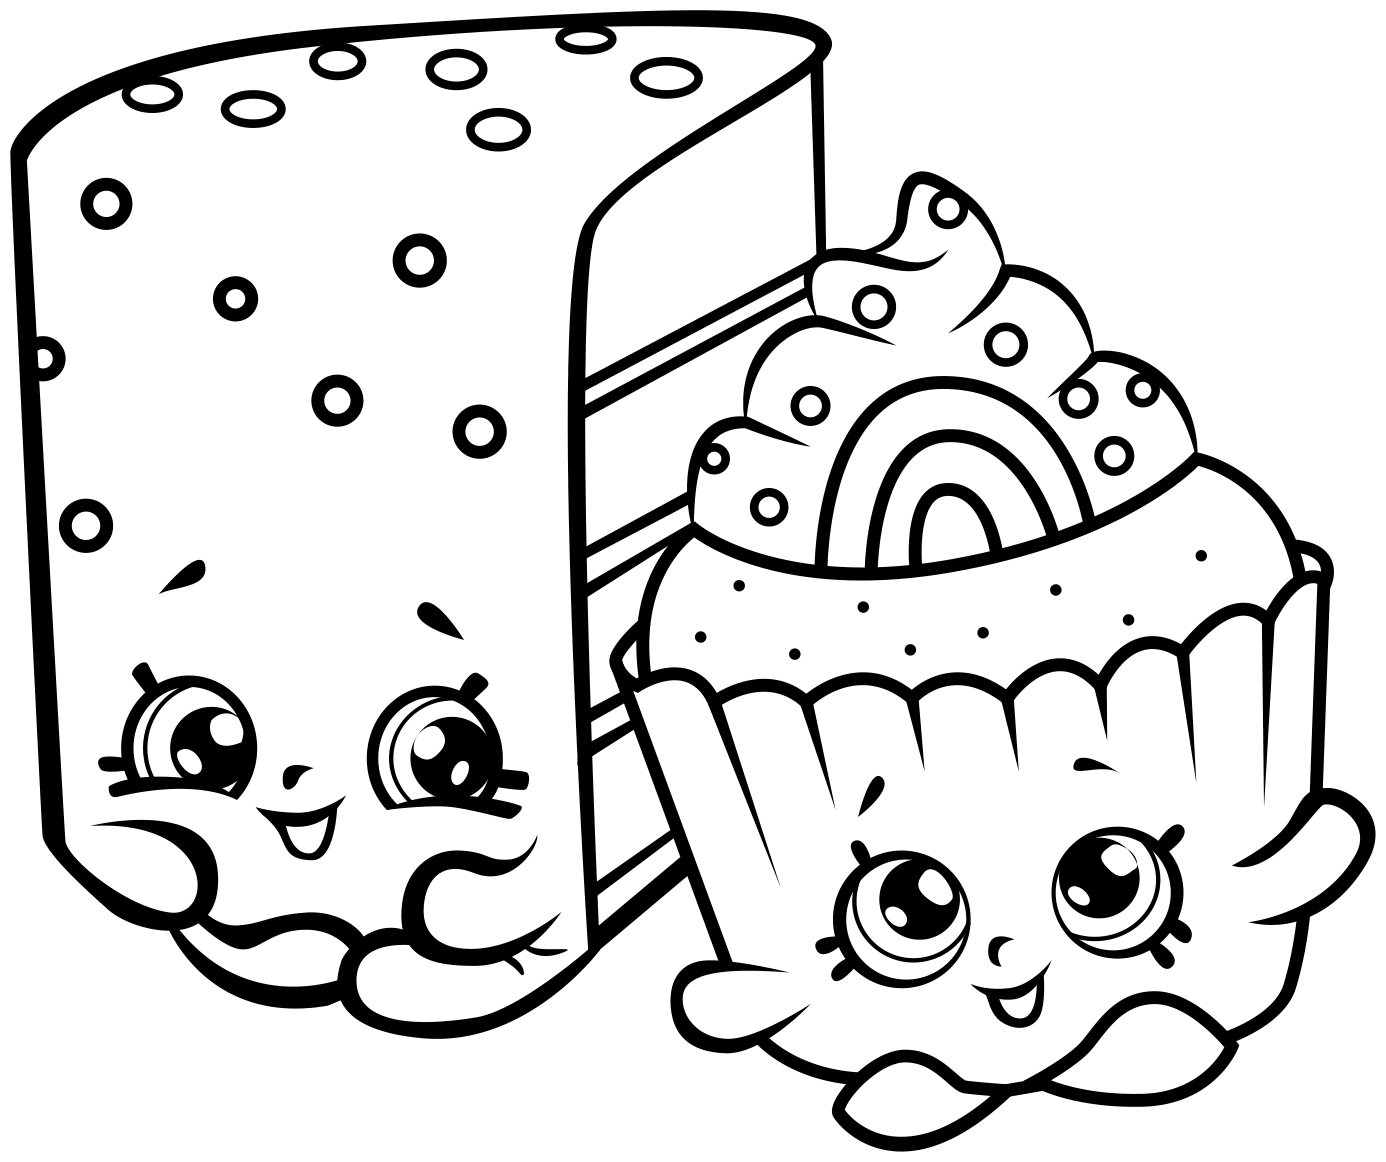 Shopkins coloring pages wishes - Shopkins Coloring Pages Printable